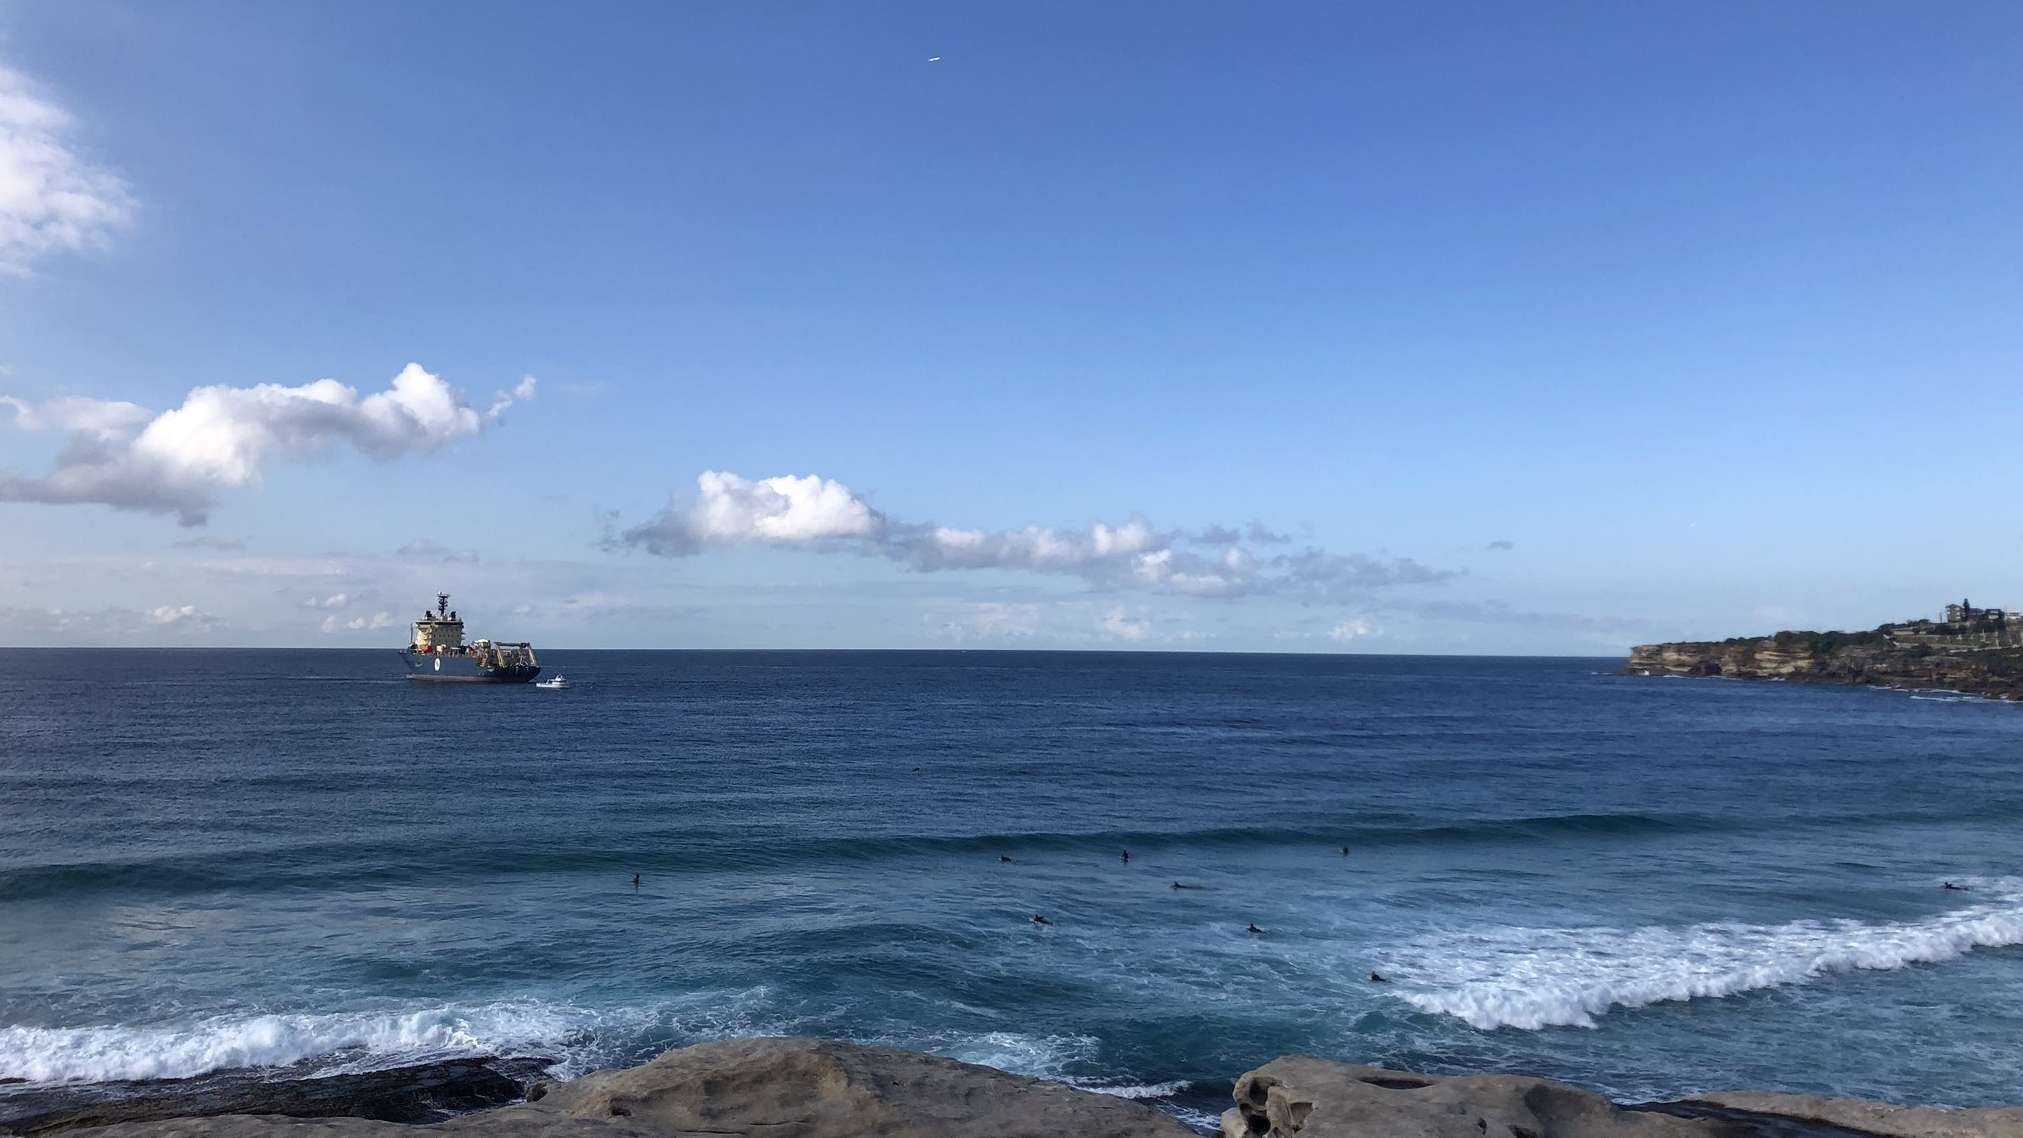 A large cable laying ship is seen quite close to the cliffs at Tamarama.